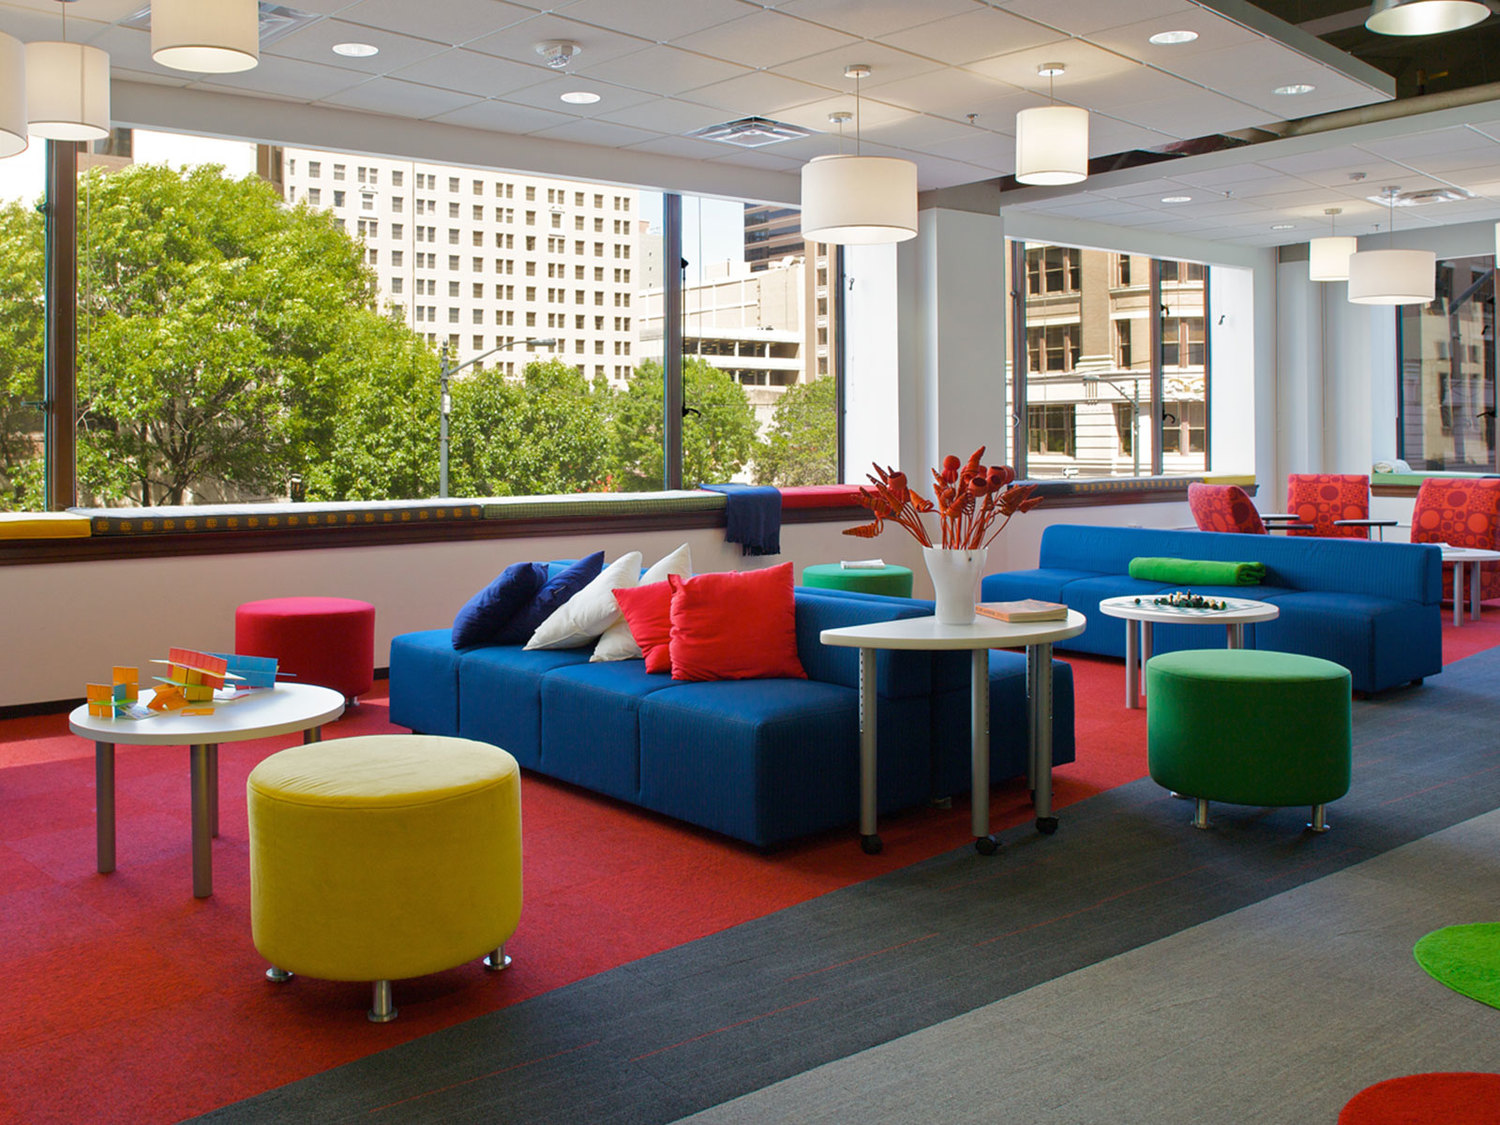 Best Office Decor Ideas To Make The Workplace Fun And Efficient Foyr